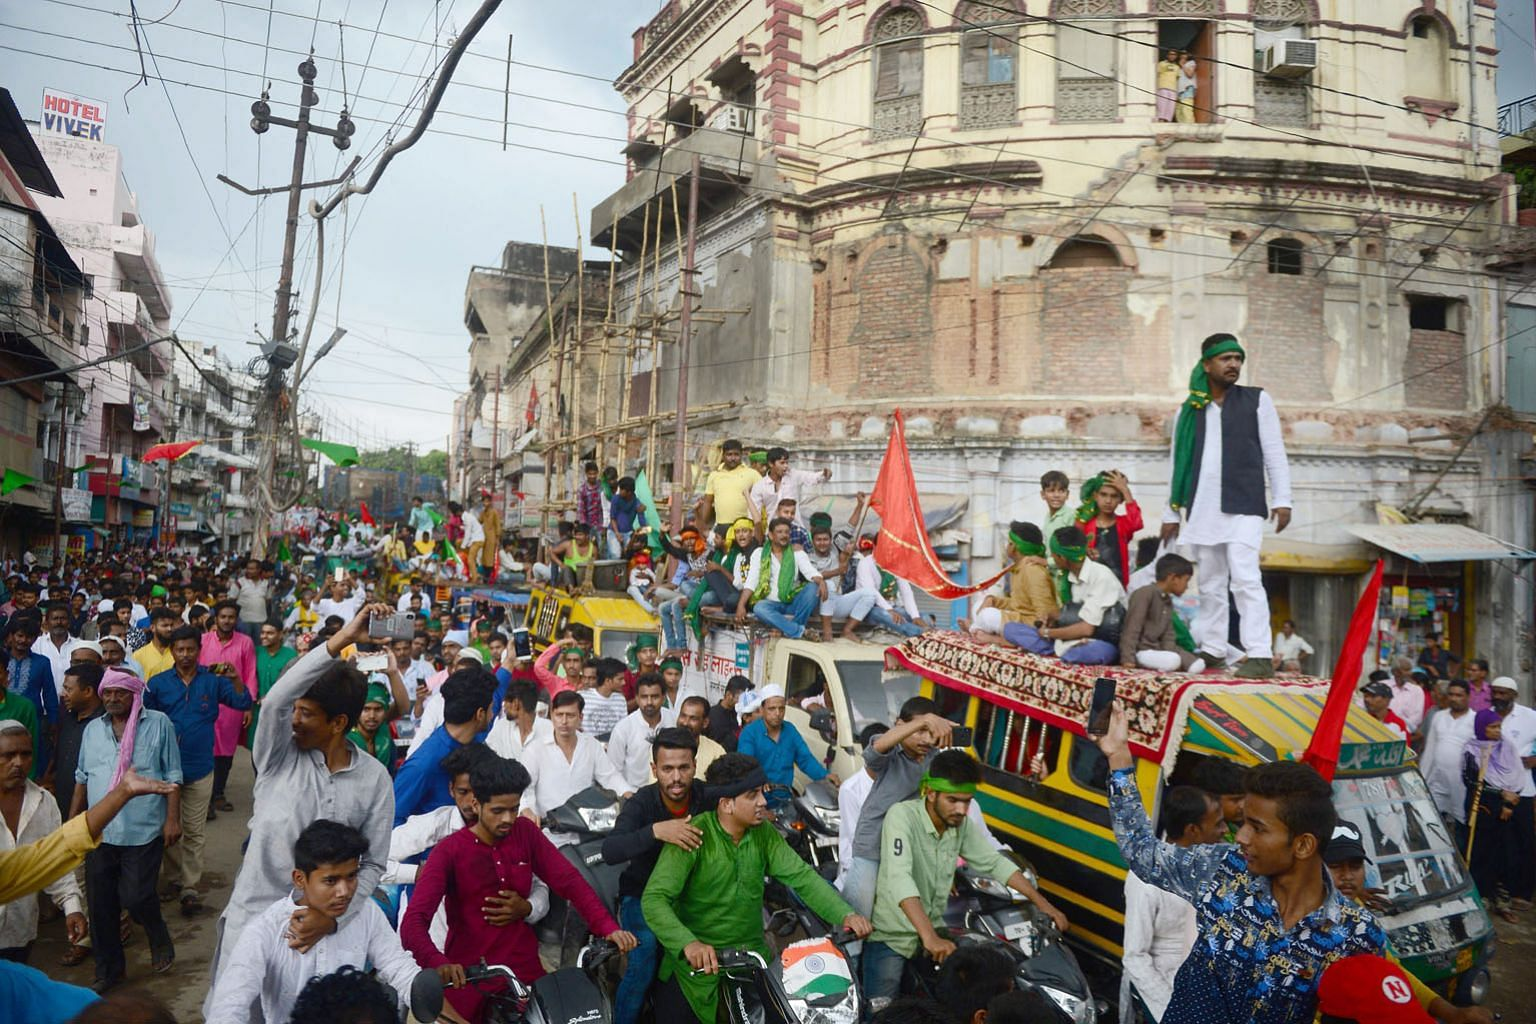 A procession during the Muslim holy month of Muharram in Allahabad on Sept 21. The city's name is a British corruption of Ilahabas, the name given in the 16th century by Mughal Emperor Akbar.